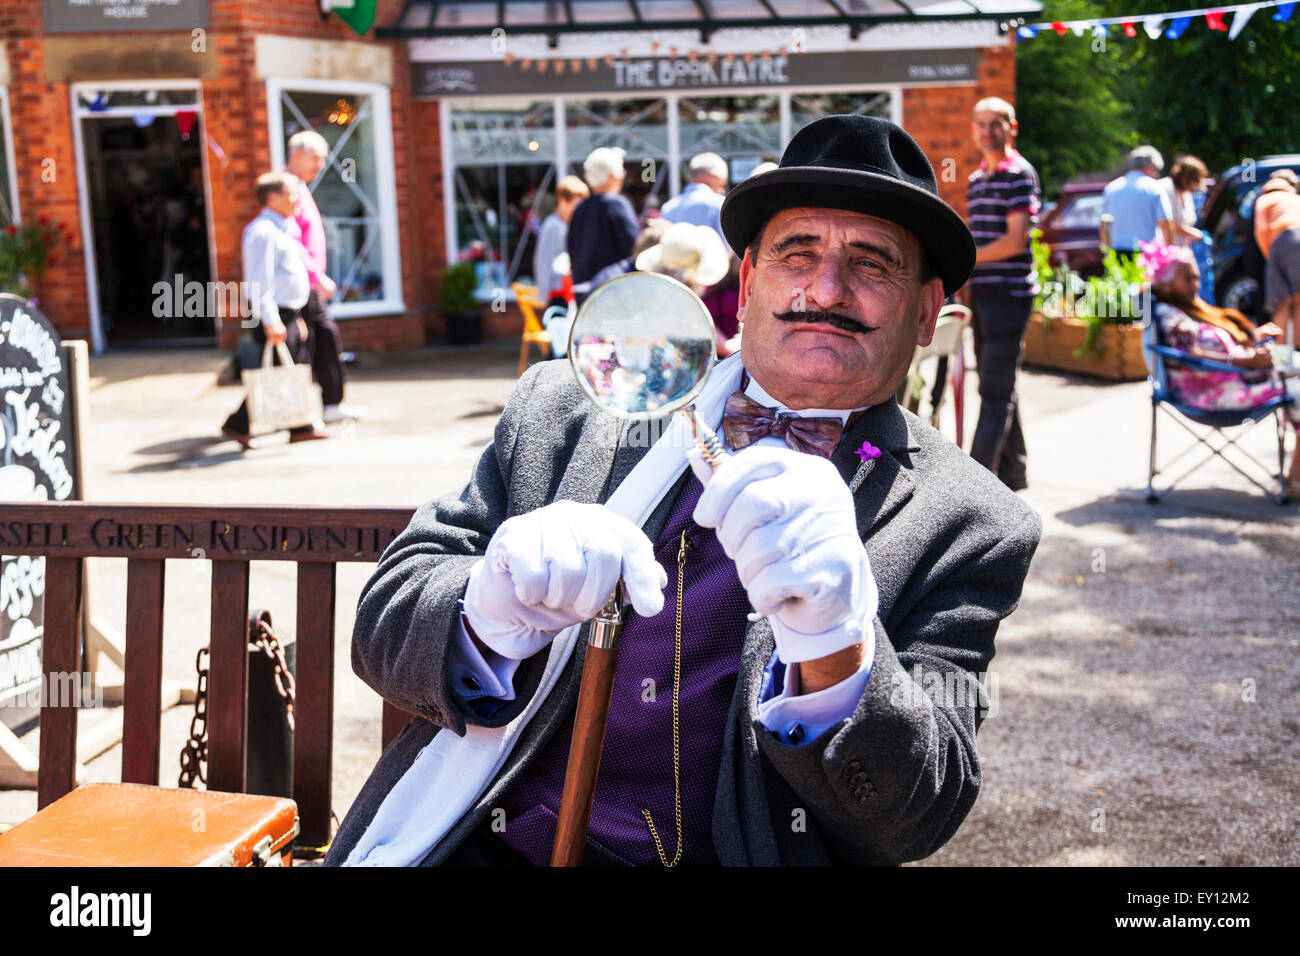 Hercule Poirot investigator with mustache suit using magnifying glass lookalike impersonator - Stock Image